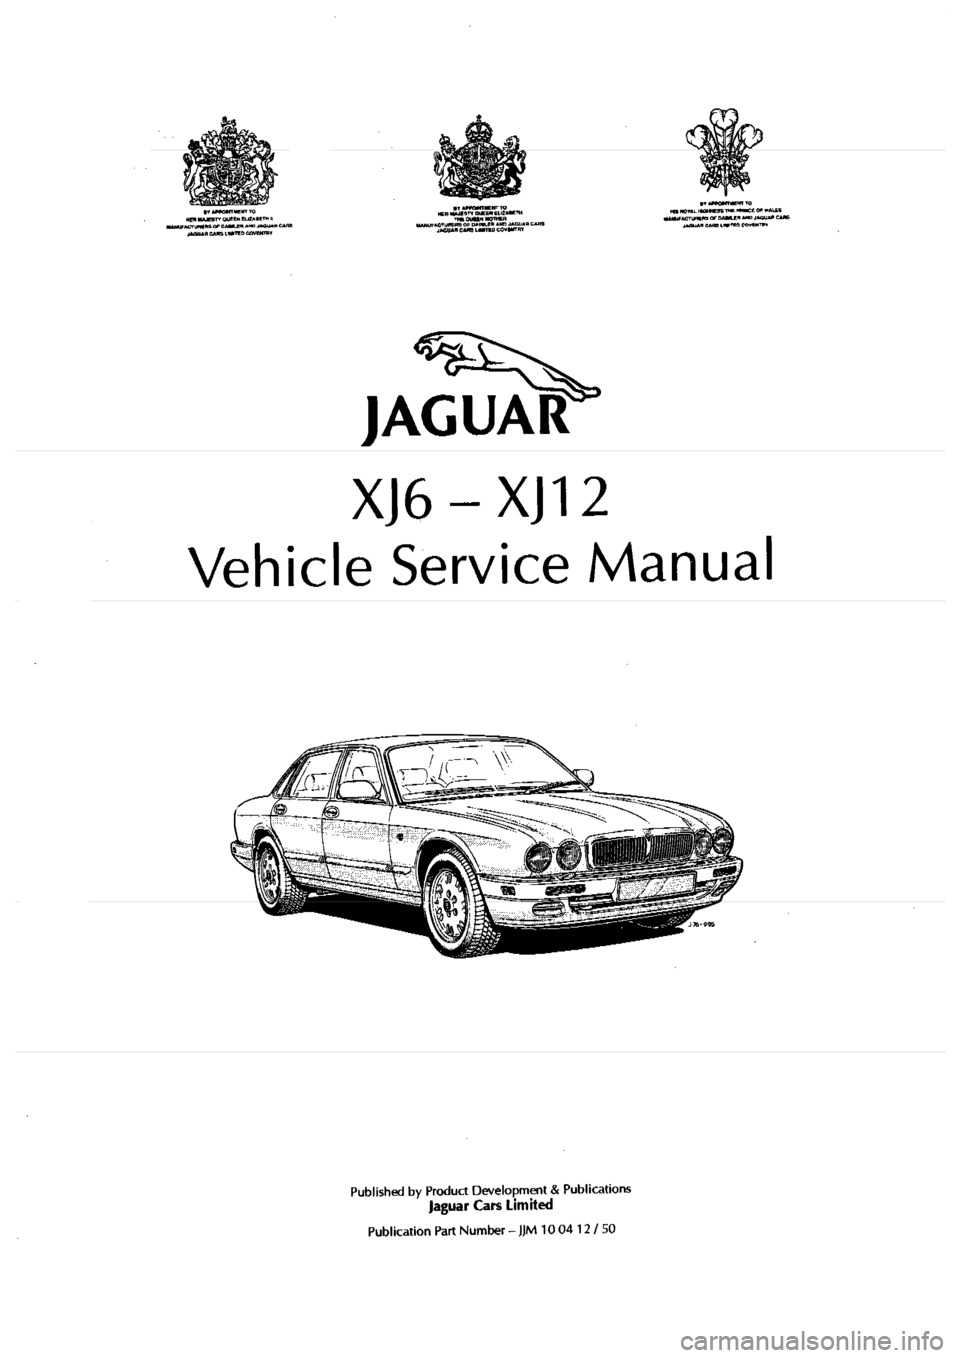 JAGUAR XJ6 1994 2.G Workshop Manual Second Edition (589 Pages)